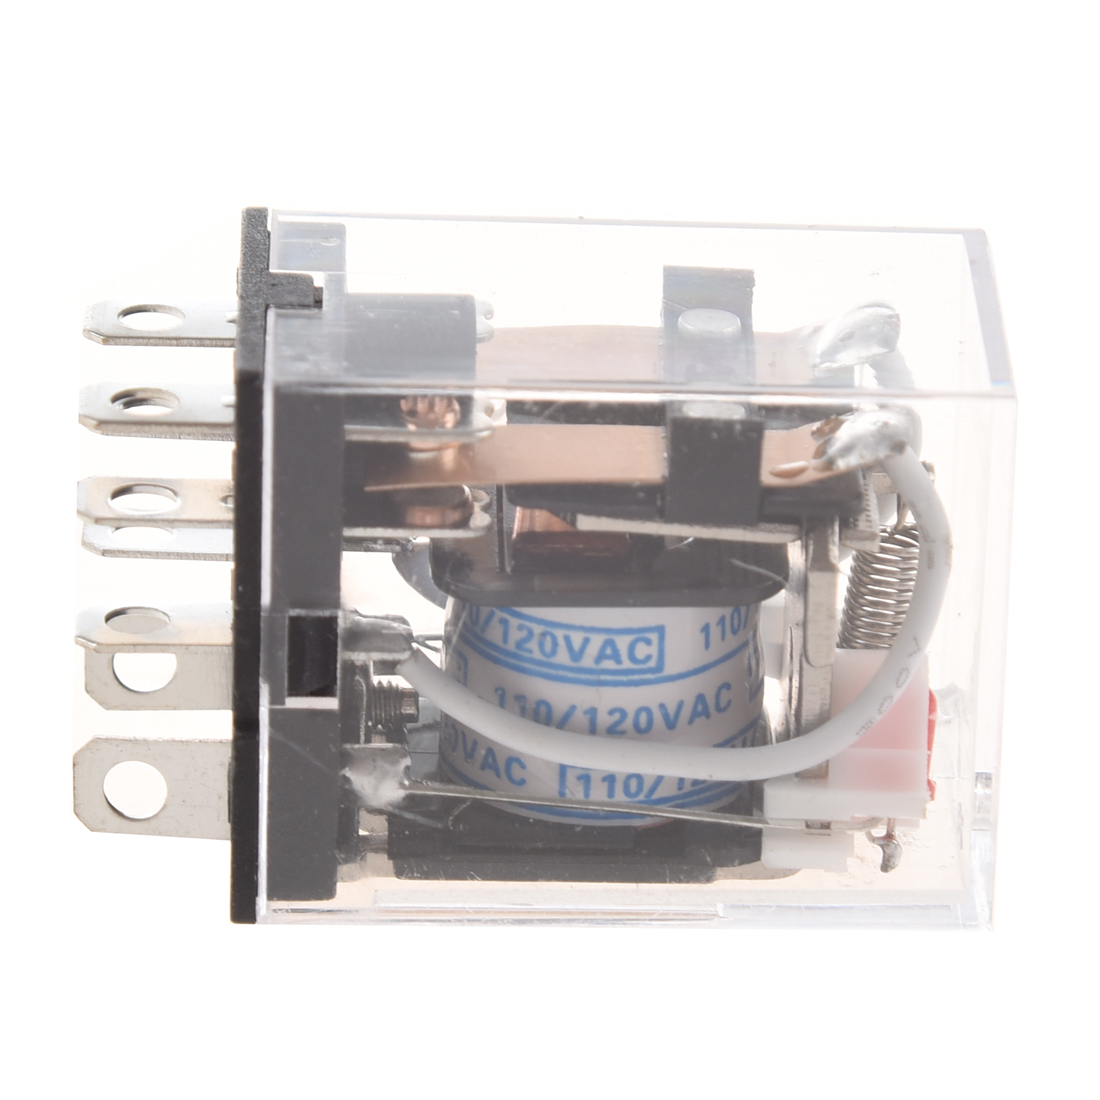 Compare Prices On Dpdt Relay Online ShoppingBuy Low Price Dpdt - Dpdt relay buy